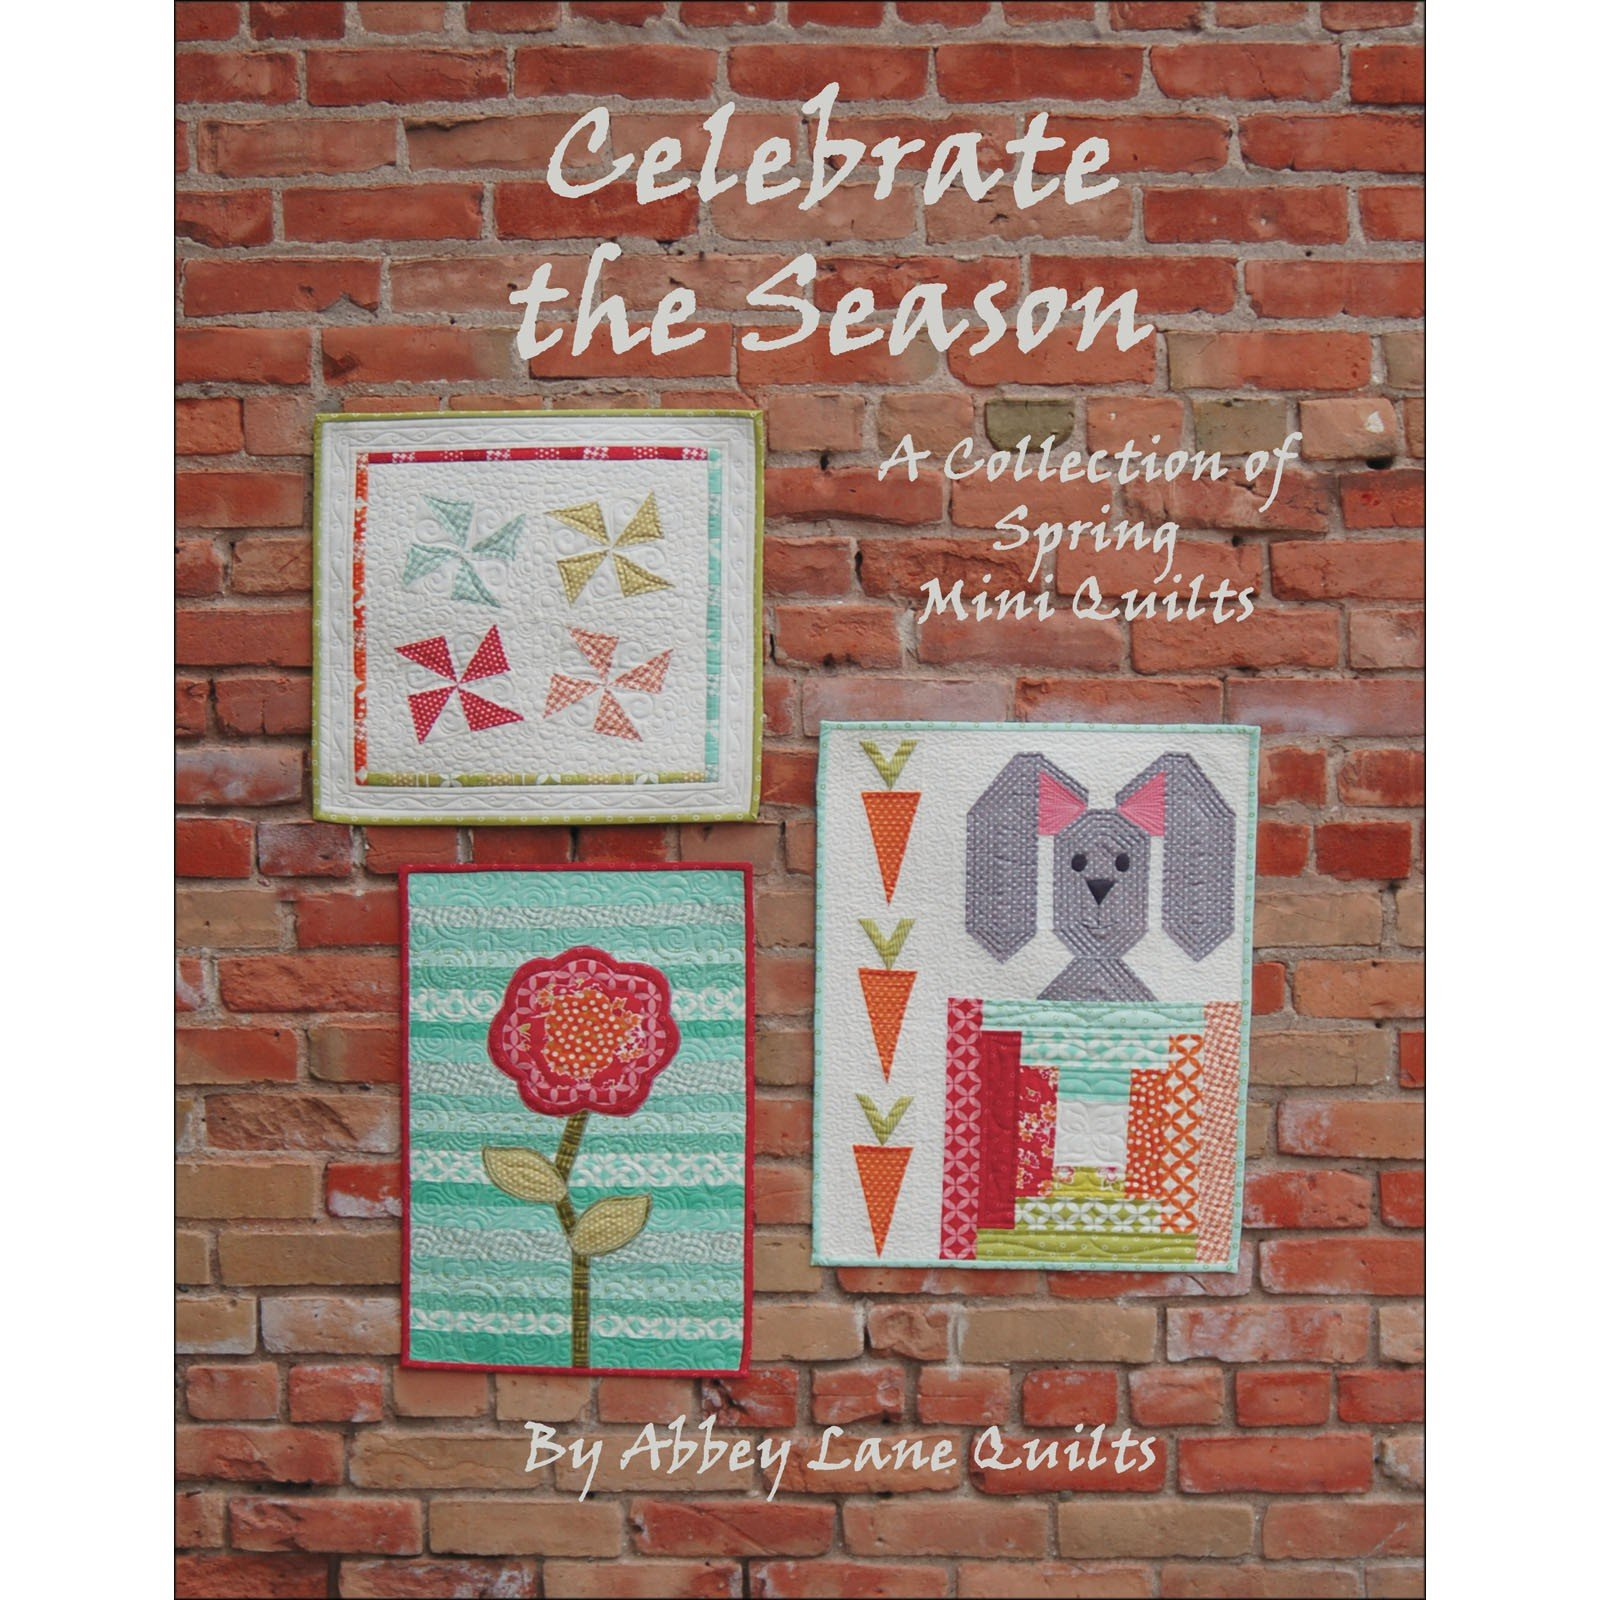 Celebrate The Season Spring<br/>Abbey Lane Quilts